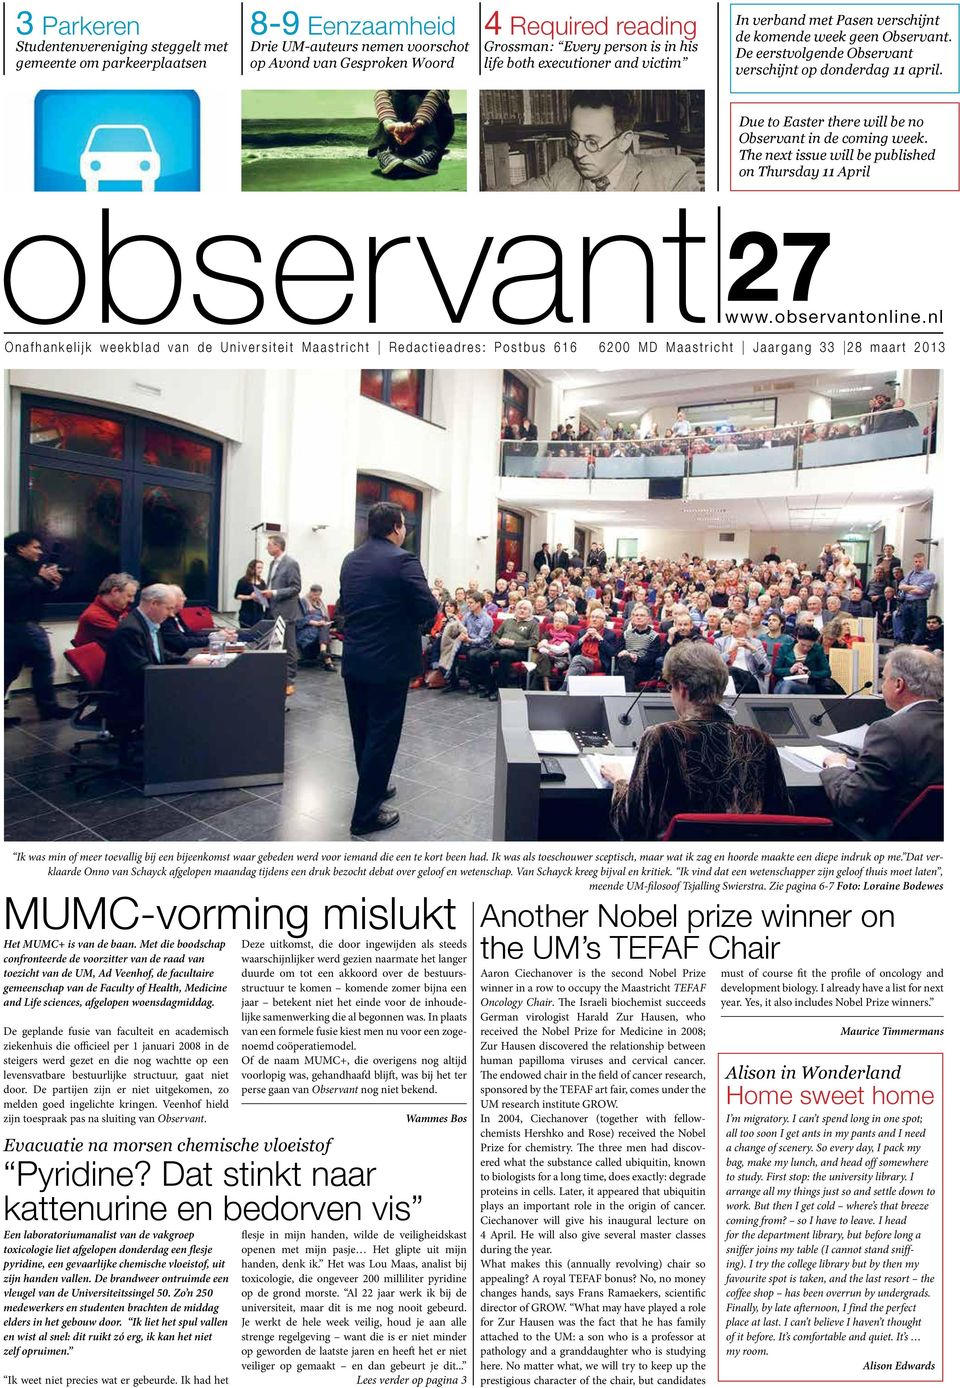 Due to Easter there will be no Observant in de coming week. The next issue will be published on Thursday 11 April 27 www.observantonline.